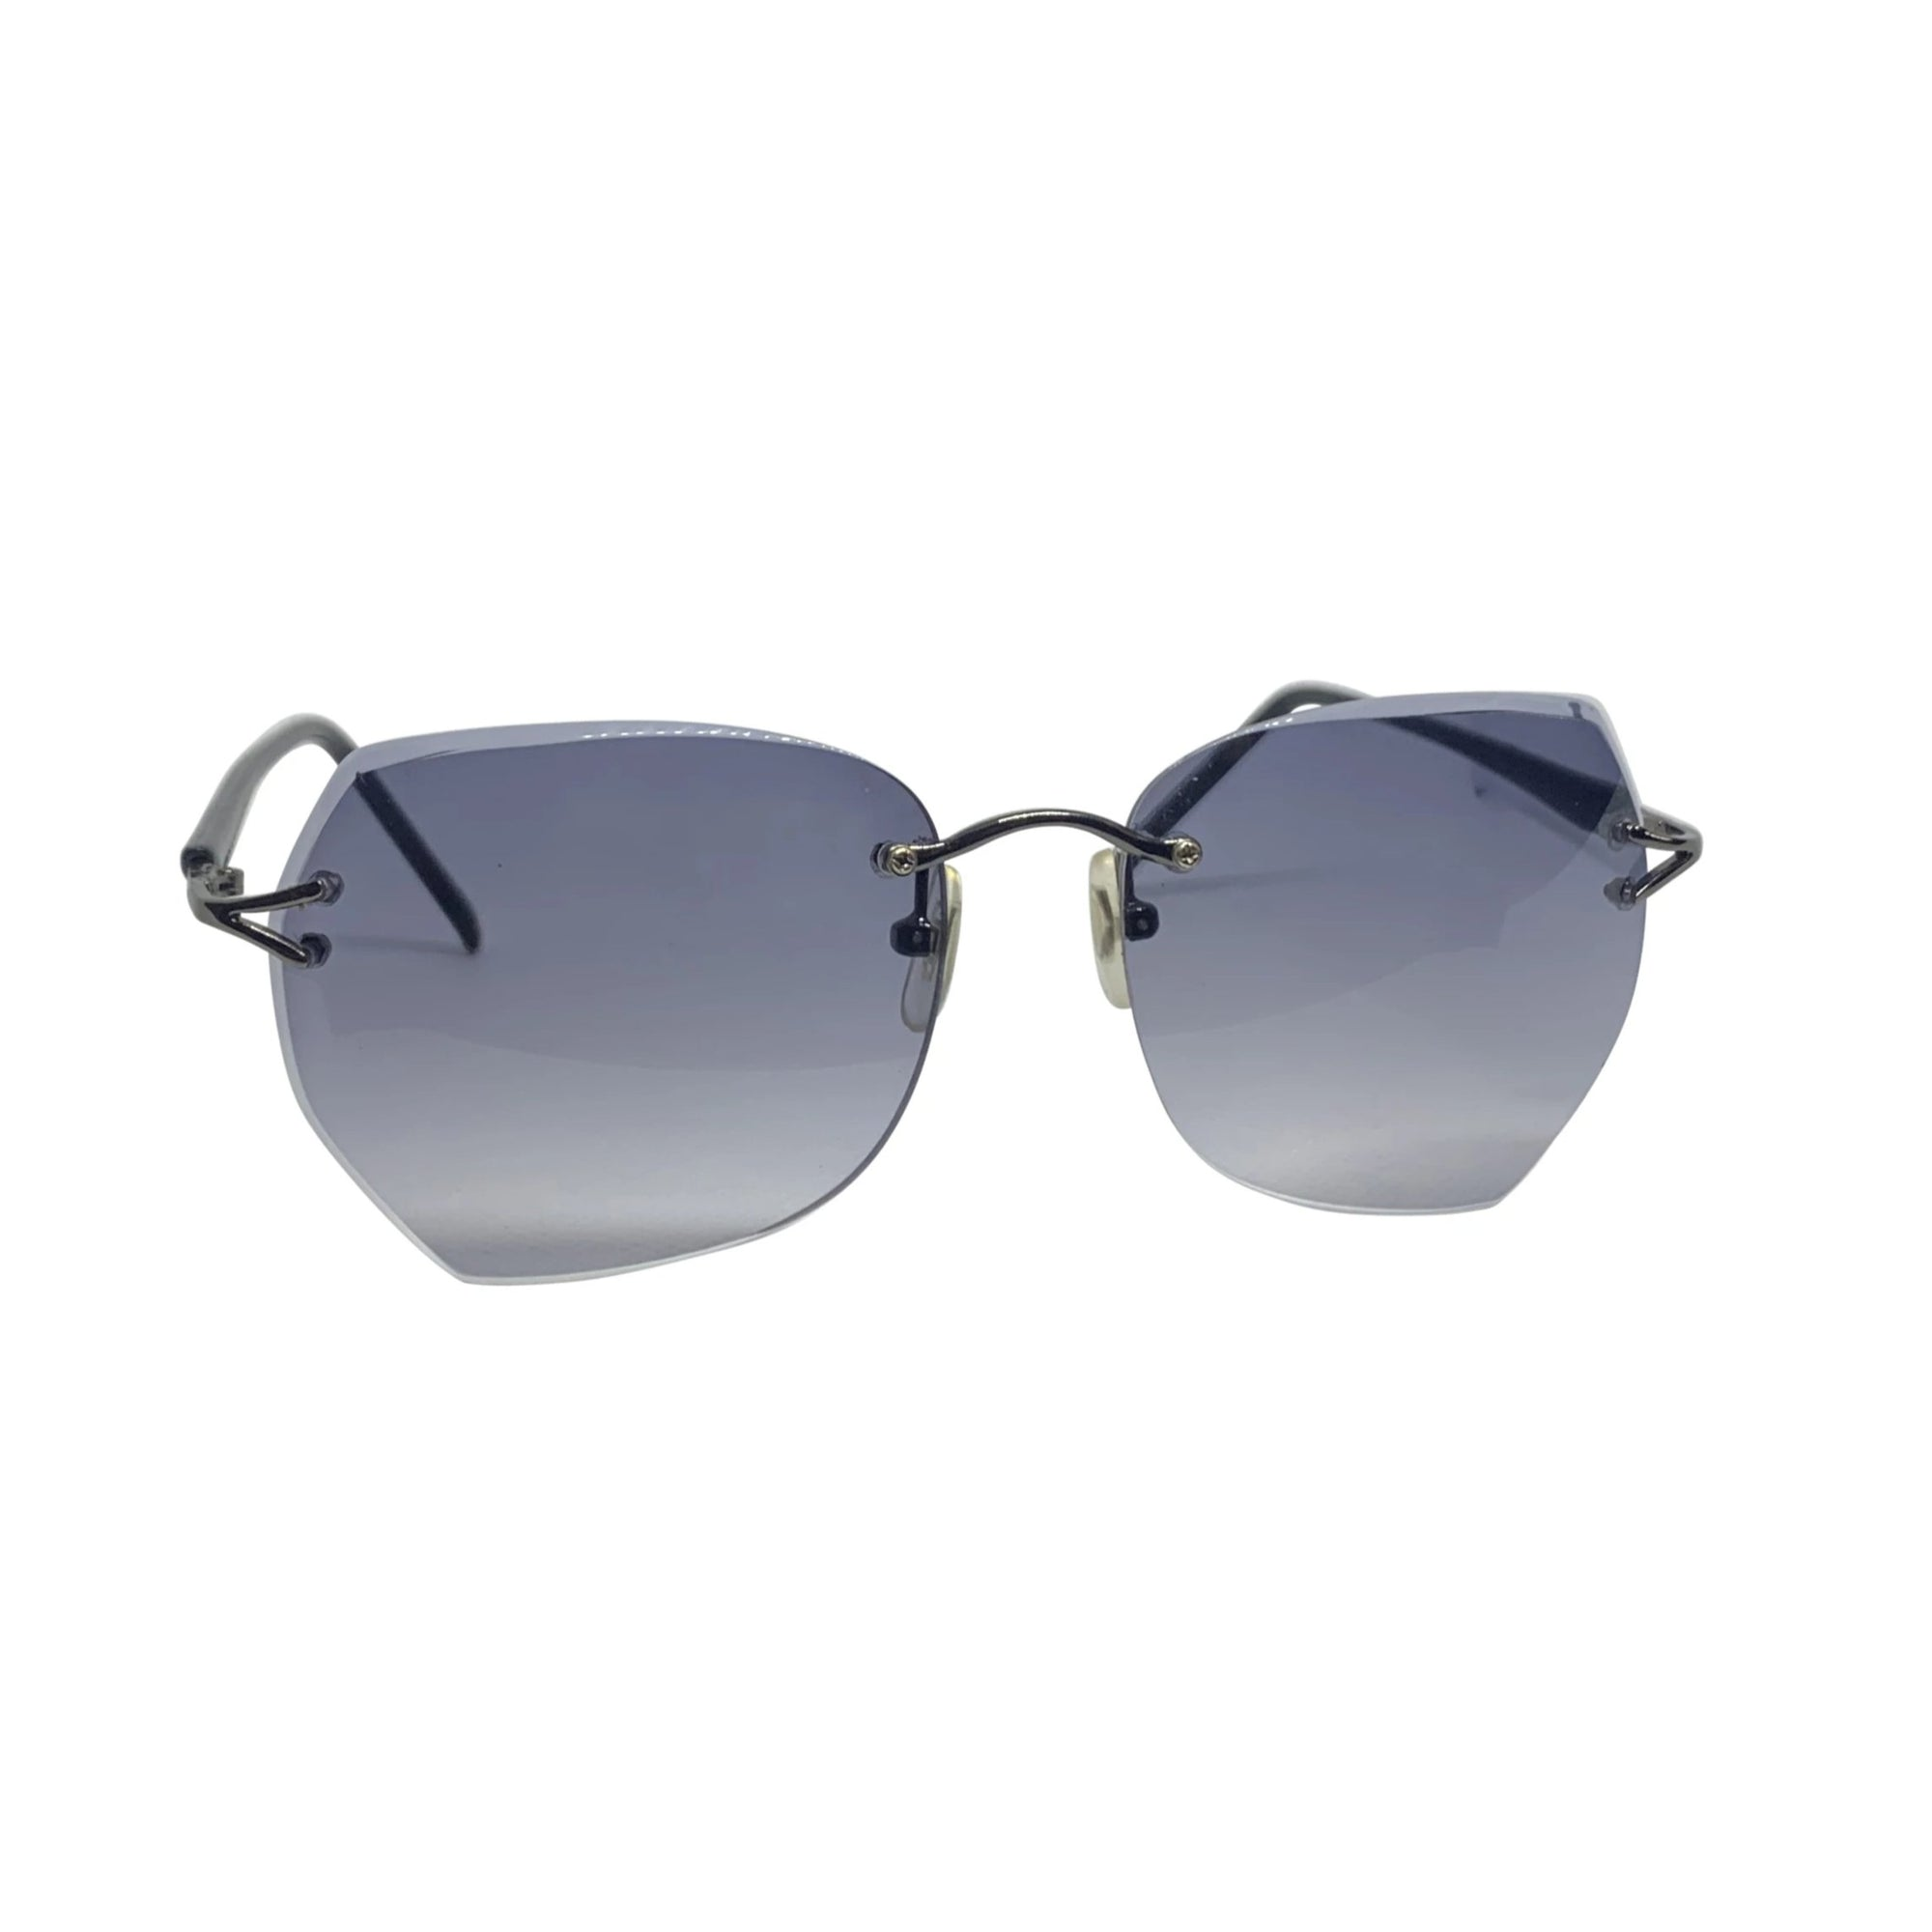 BELLYBOP Smoke 90s Rimless Sunnies